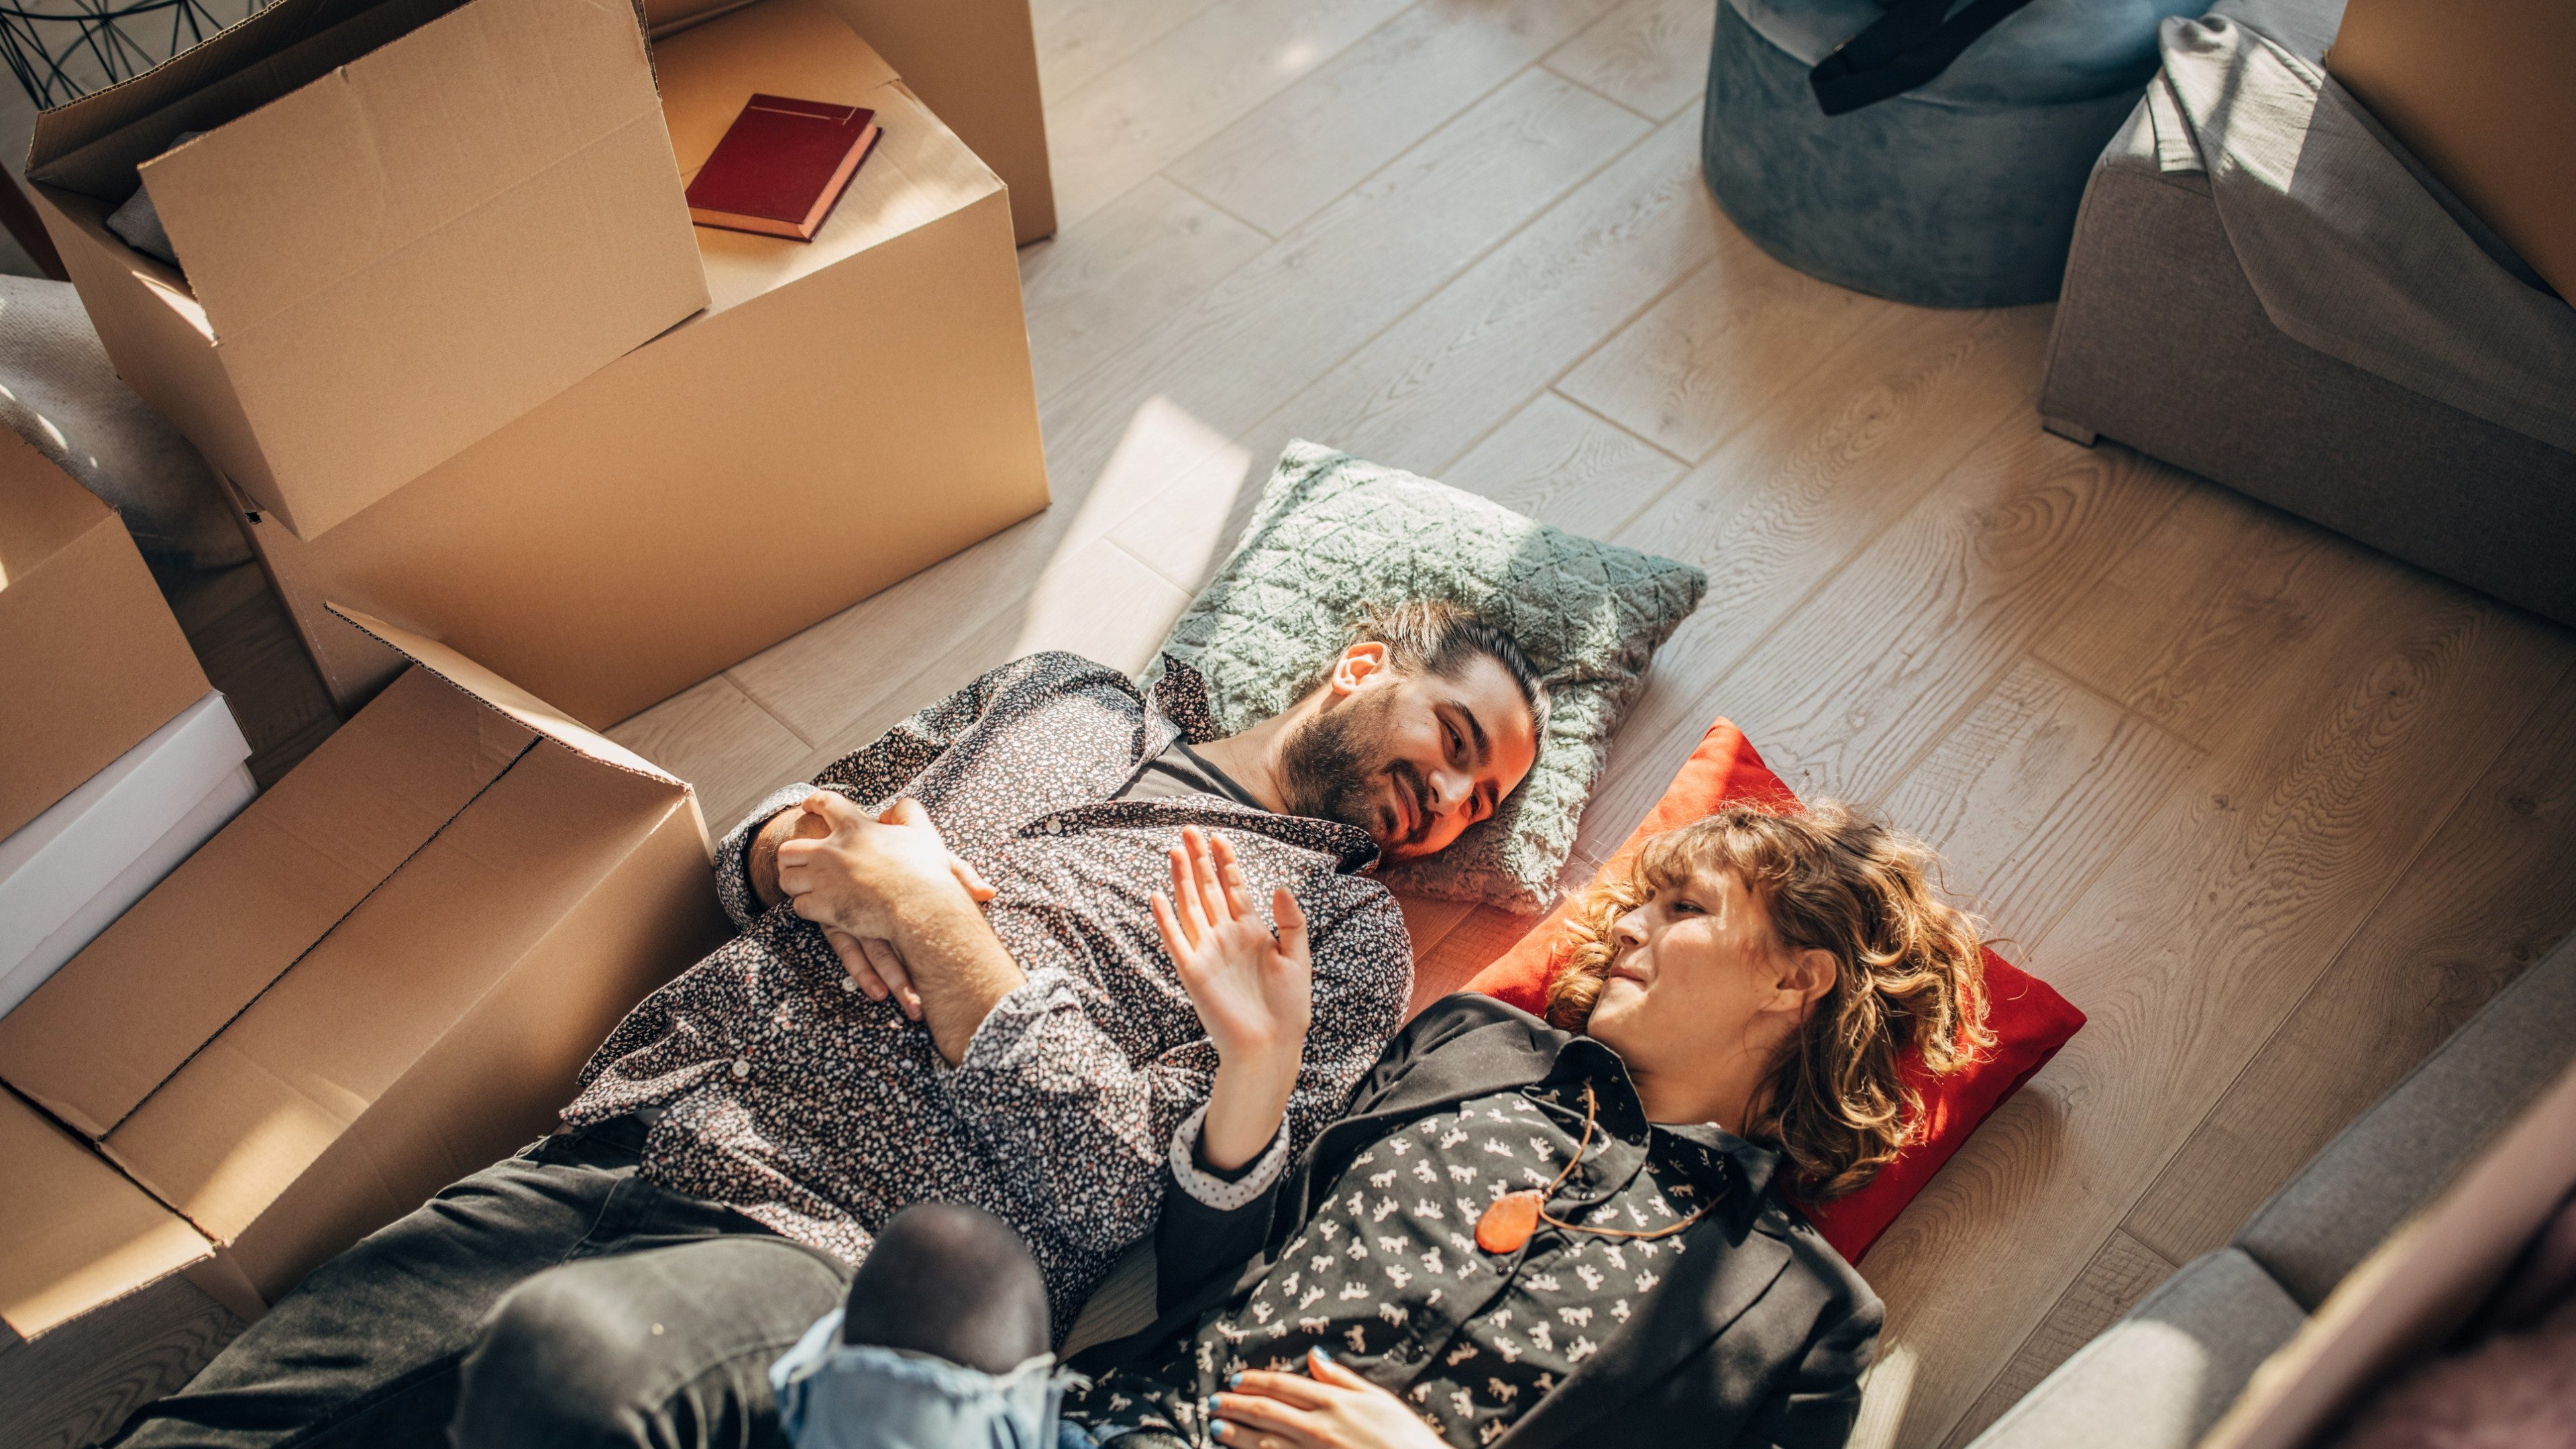 Man and woman, young couple moving into their new apartment together, lying on the floor together.